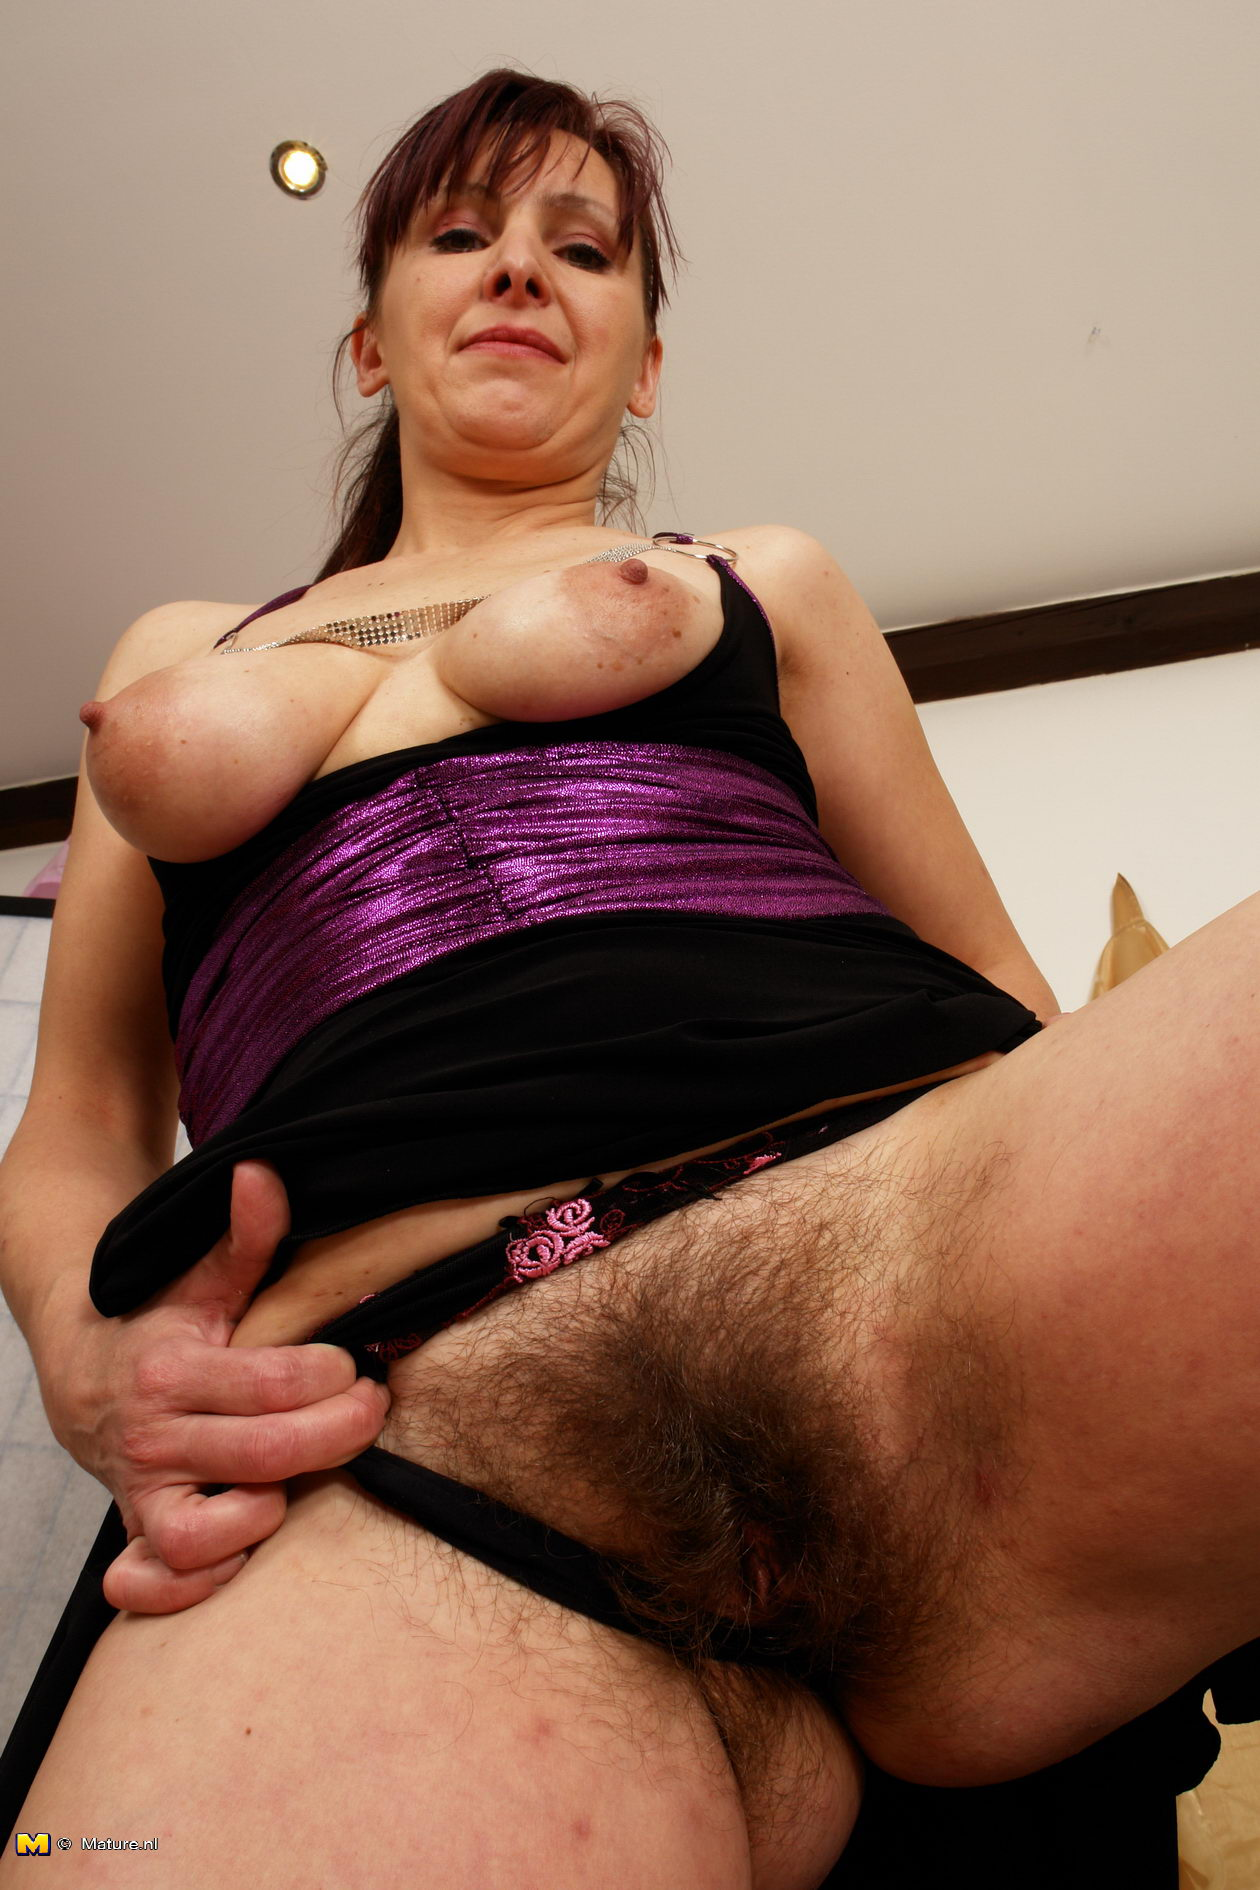 Idea Pregnant hairy pussy tumblr accept